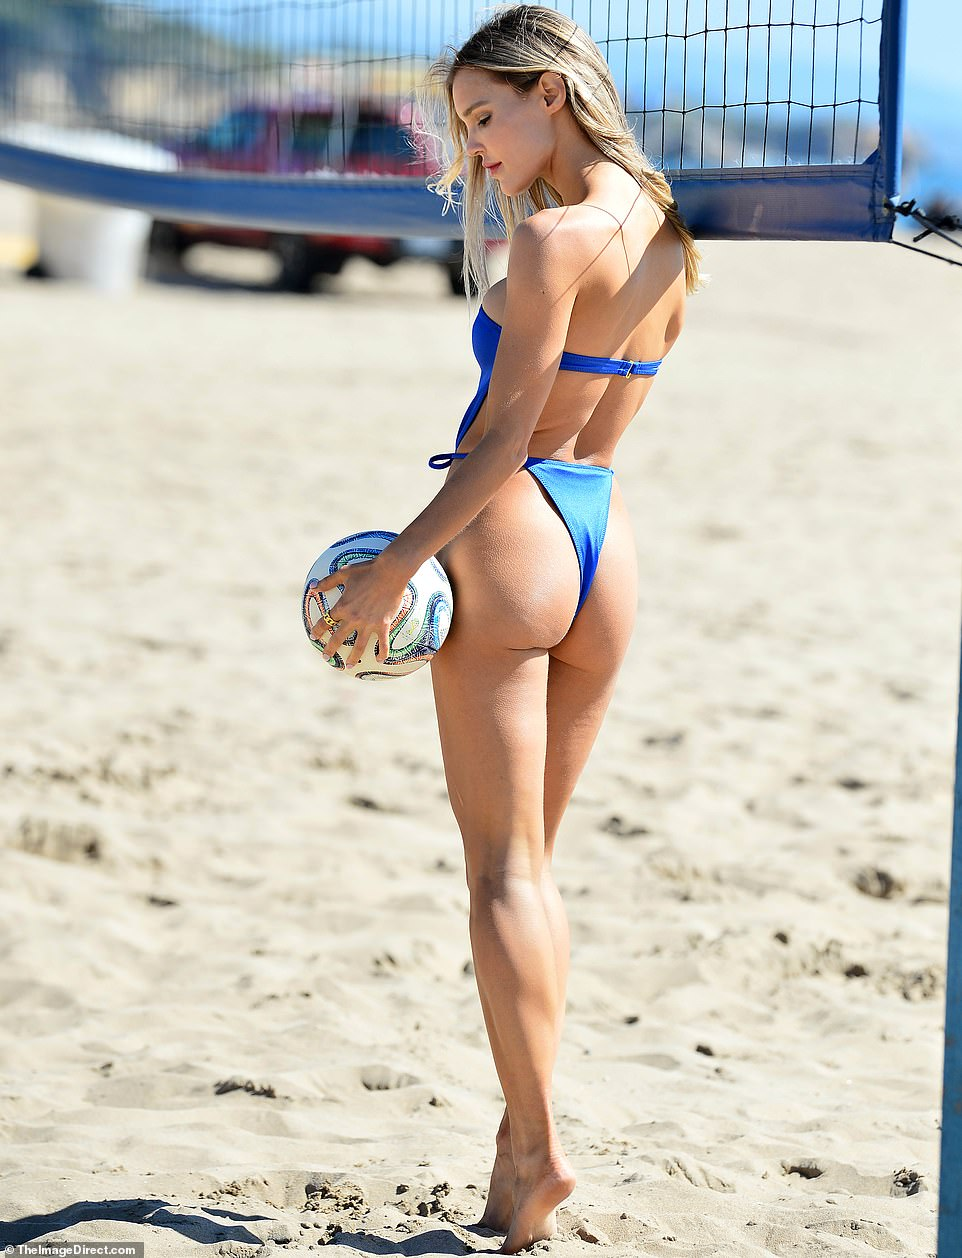 Looking fab:\u00A0The 33-year-old slipped into a strapless true blue swimsuit that hinted at her cleavage and played up her derriere